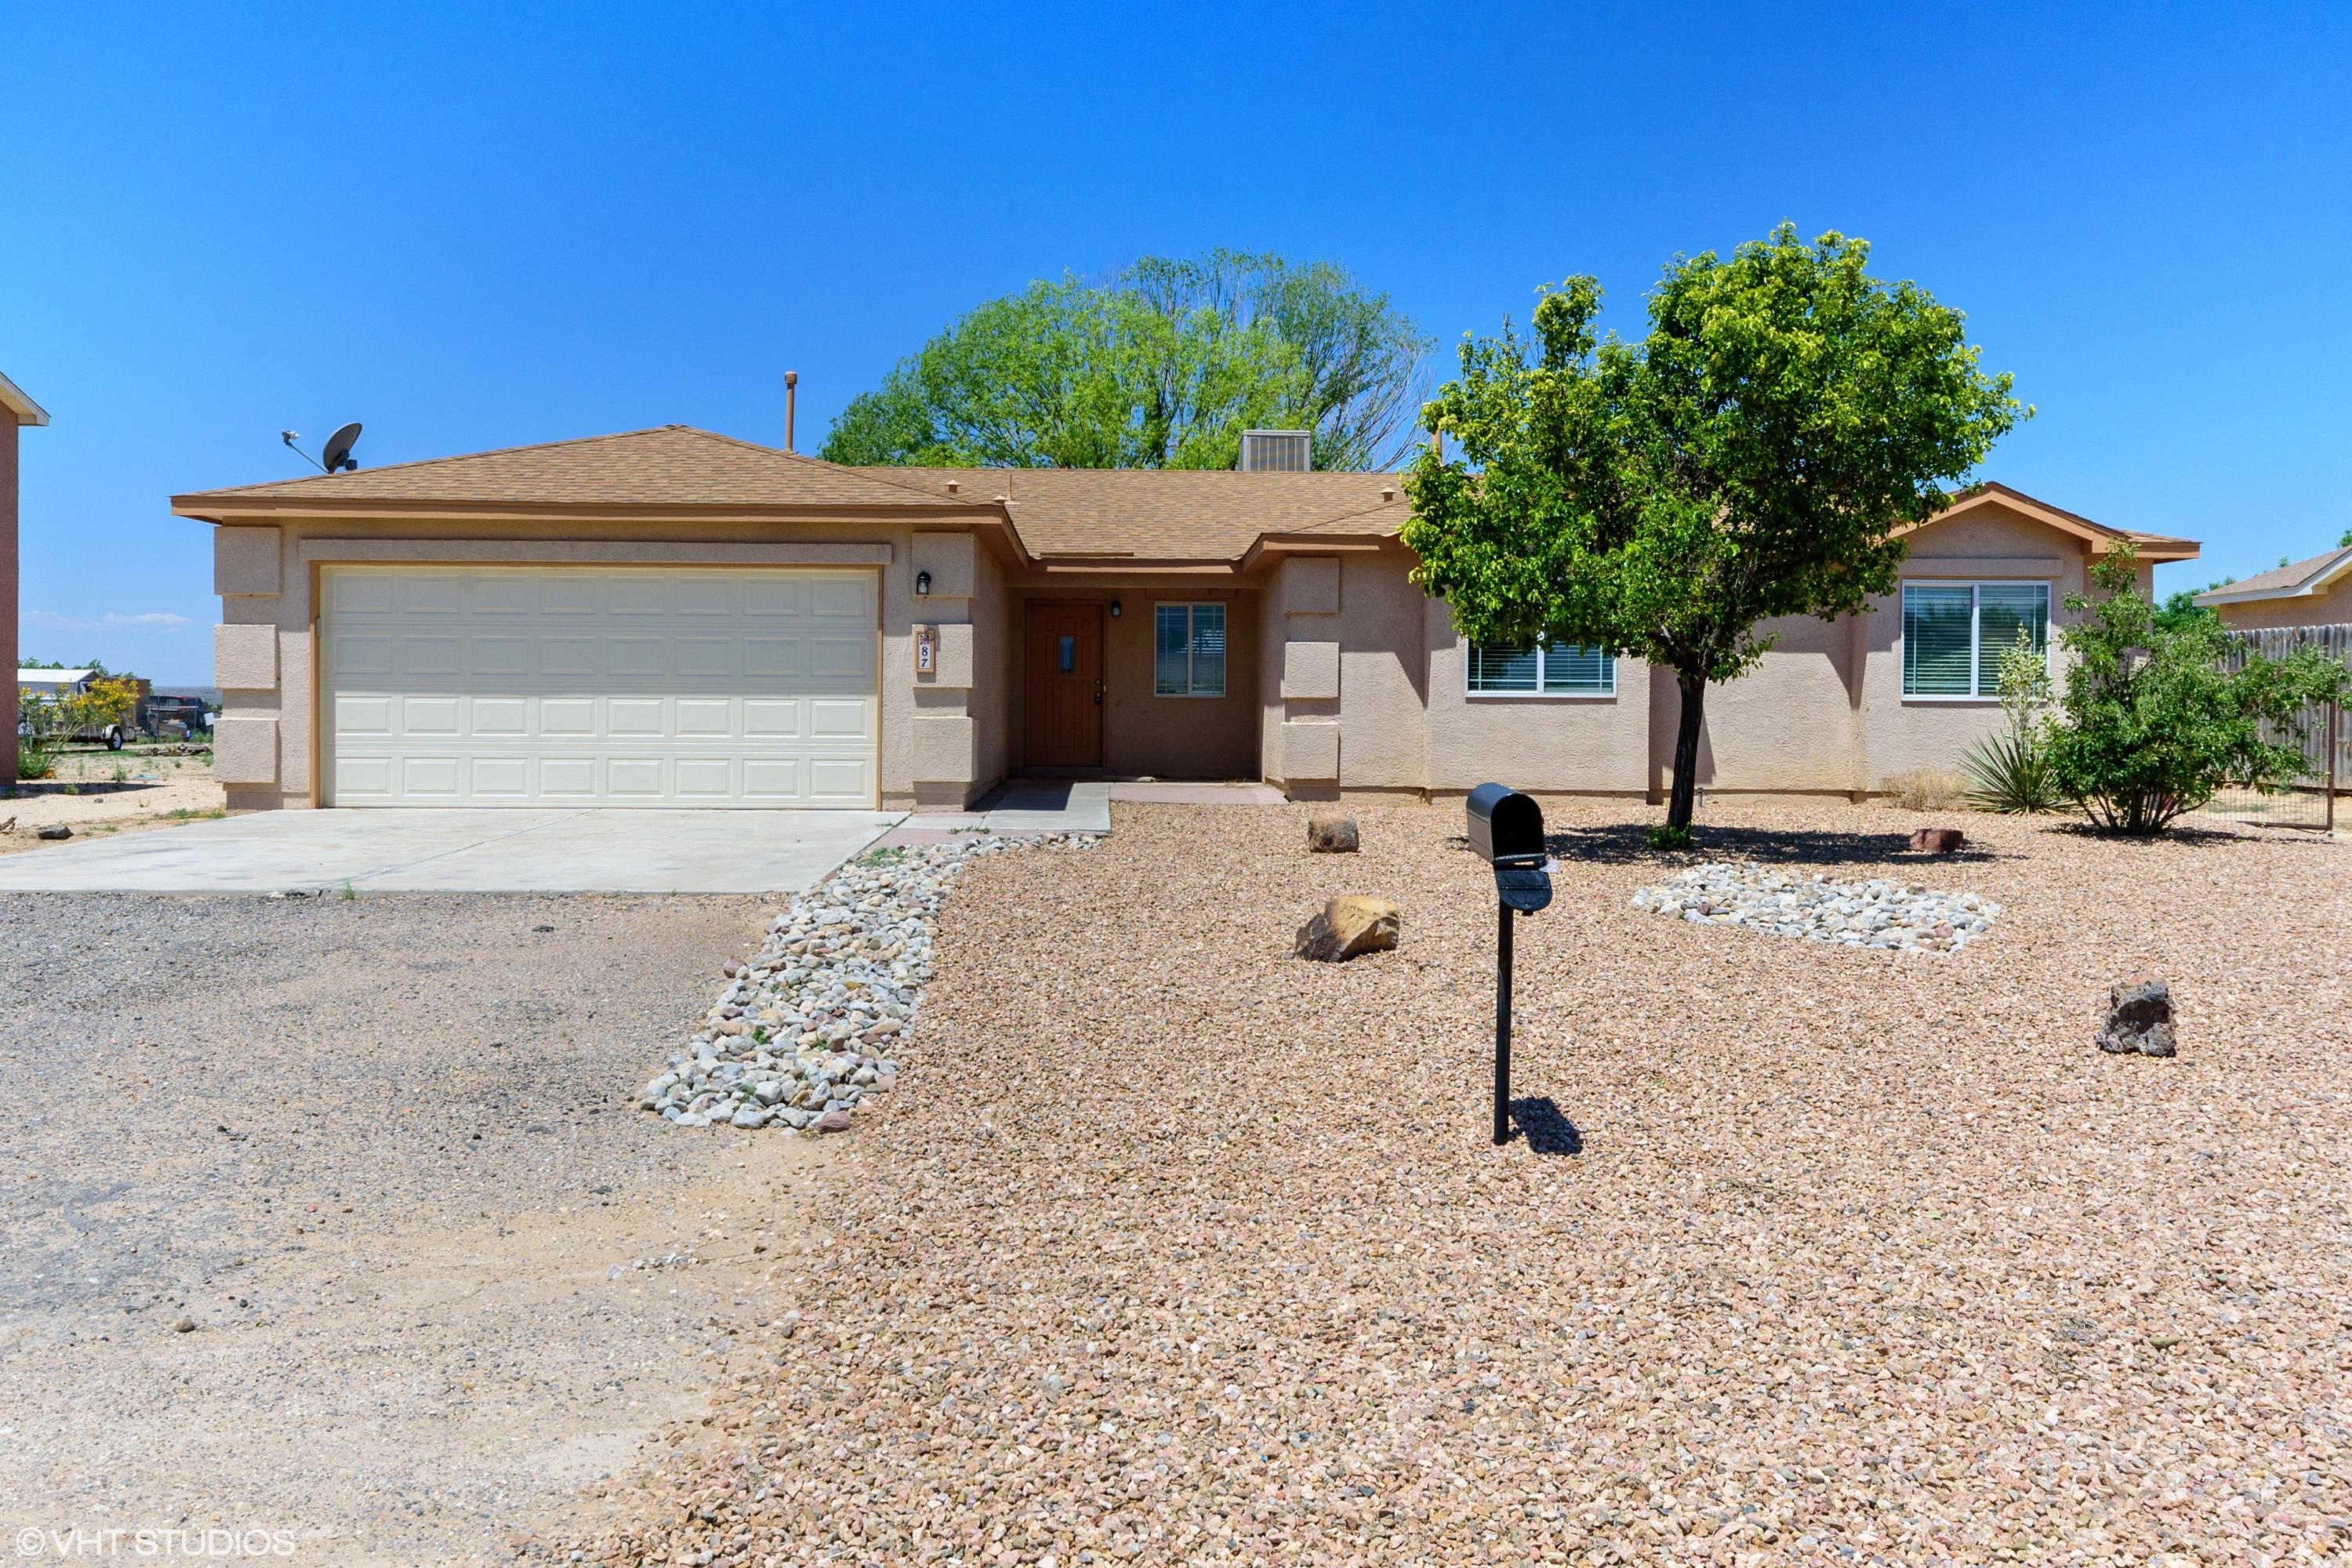 Beautiful move in ready property in Rio Rancho. Home features an open floor plan  with new flooing, fresh paint. Kitchen offers plenty of cabinet space with new granite counter tops and new stainless steel appliances. Master bedroom offers large walk in closet and bathroom with double sinks. Large backyard with access. Septic tank was installed.